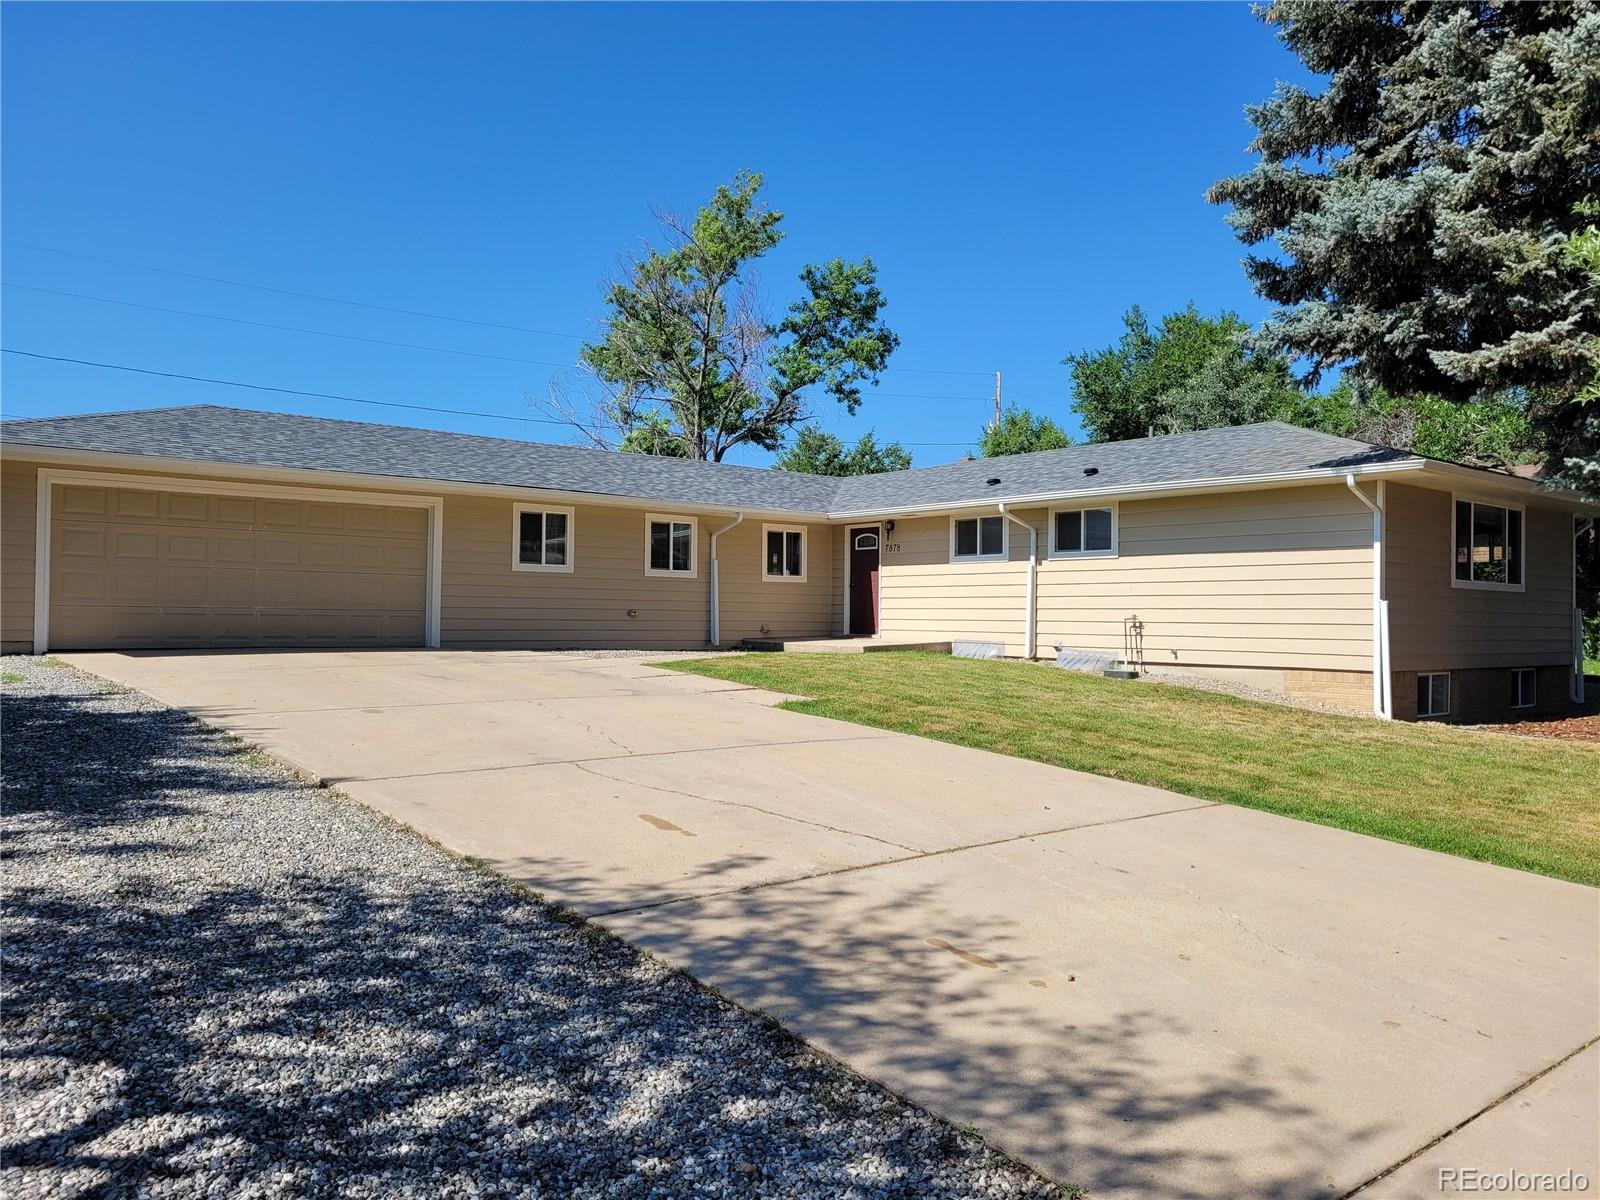 7878 W 119th Place, Broomfield, CO 80020 - #: 4580528